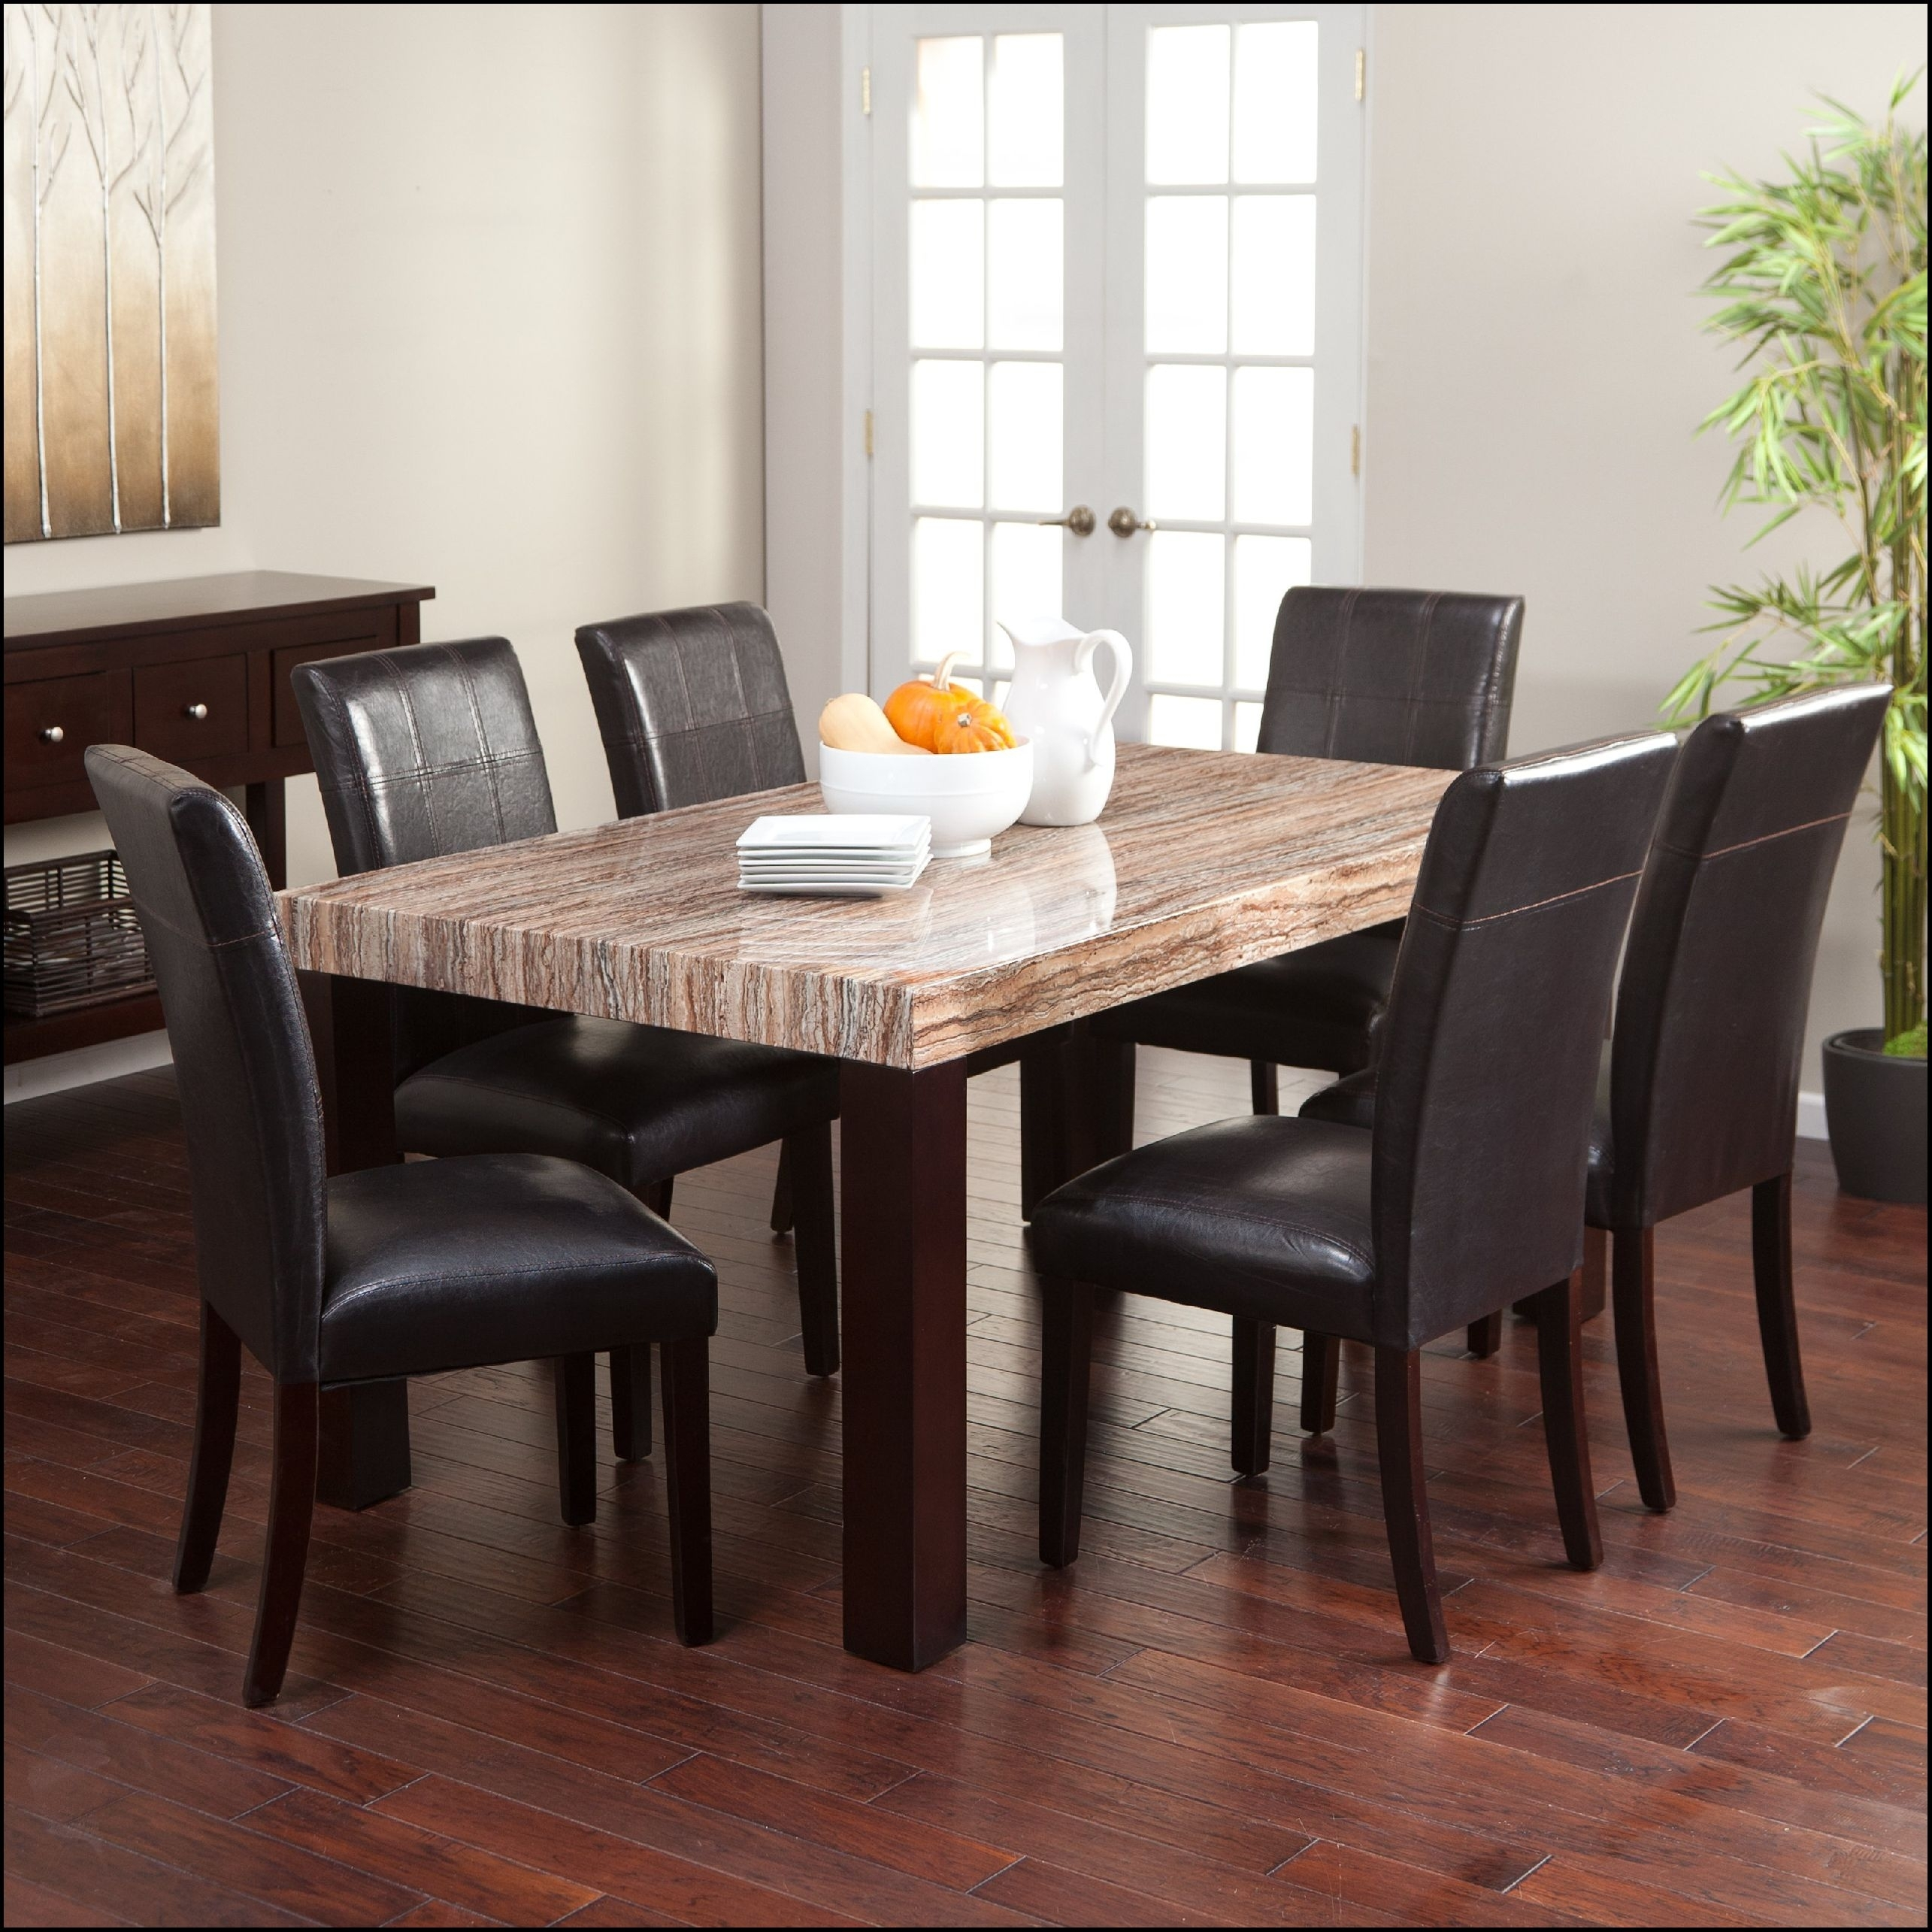 Great Finley Home Palazzo 6 Piece Dining Set With Bench With Looking For 2017 Palazzo Rectangle Dining Tables (Photo 12 of 20)